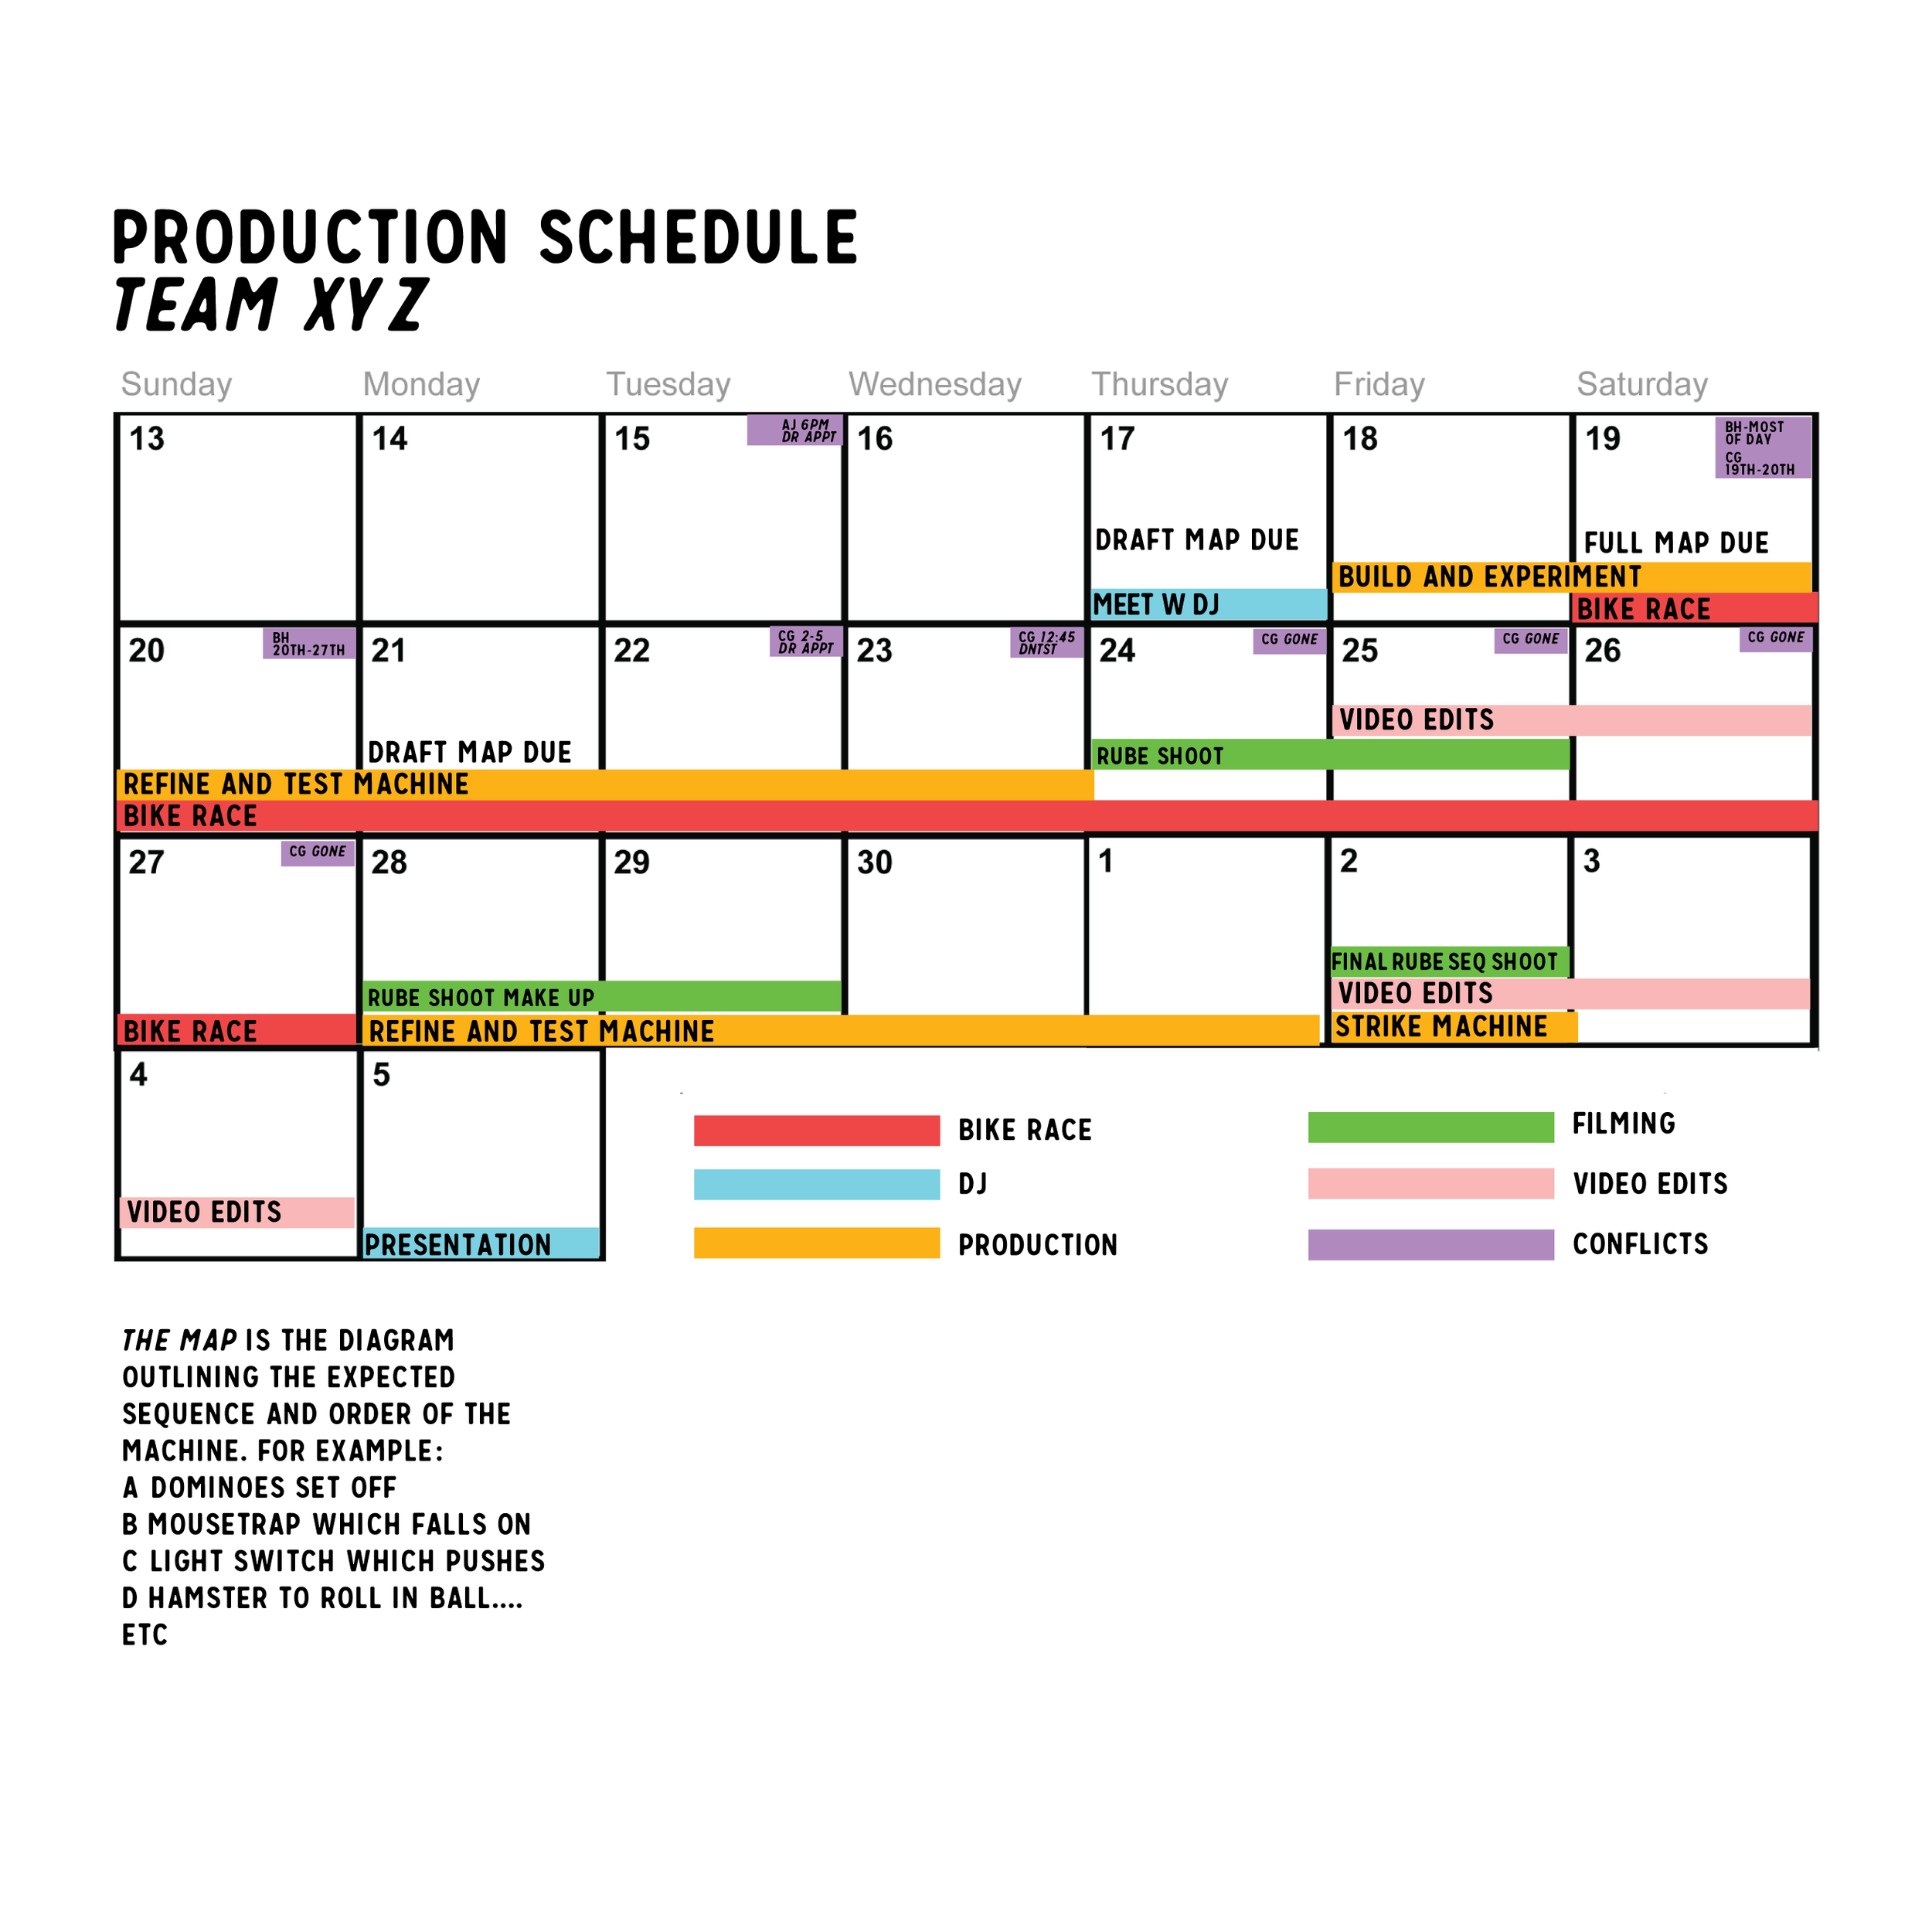 Tight production schedule.